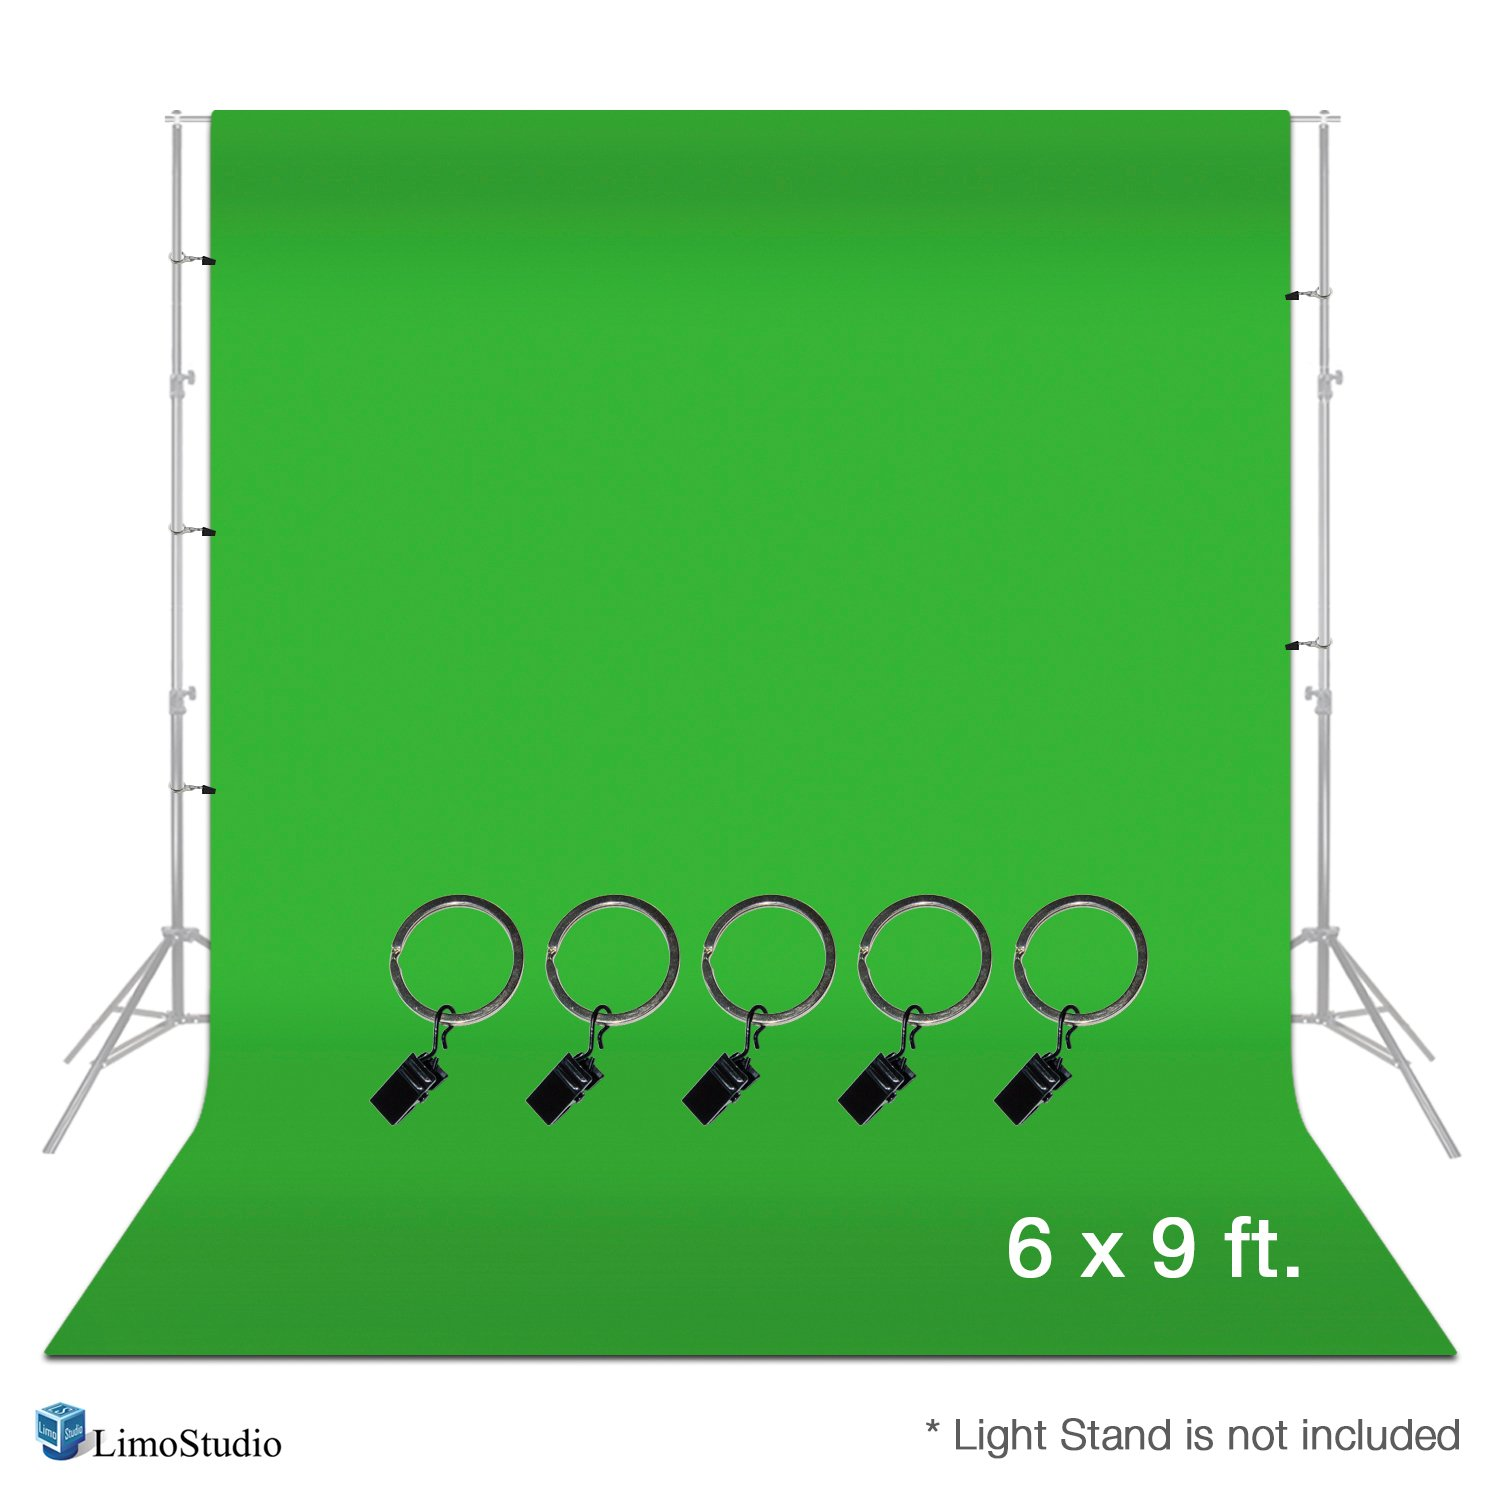 LimoStudio 6 x 9 ft. Green Muslin Backdrop with Ring Metal Holding Clips for Photo Video Studio, AGG1338 by LimoStudio